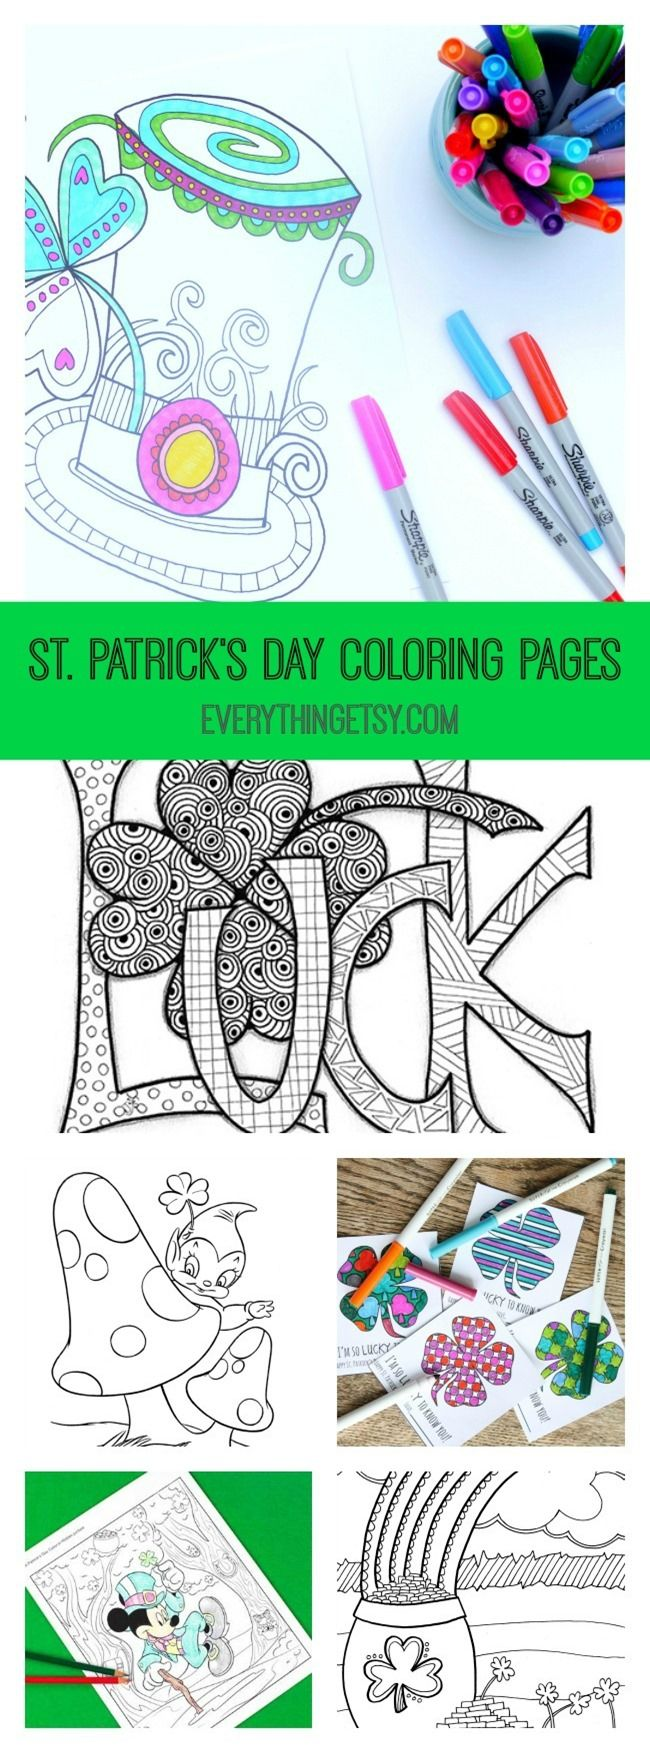 51 best coloring pages images on Pinterest | Coloring books, Vintage ...